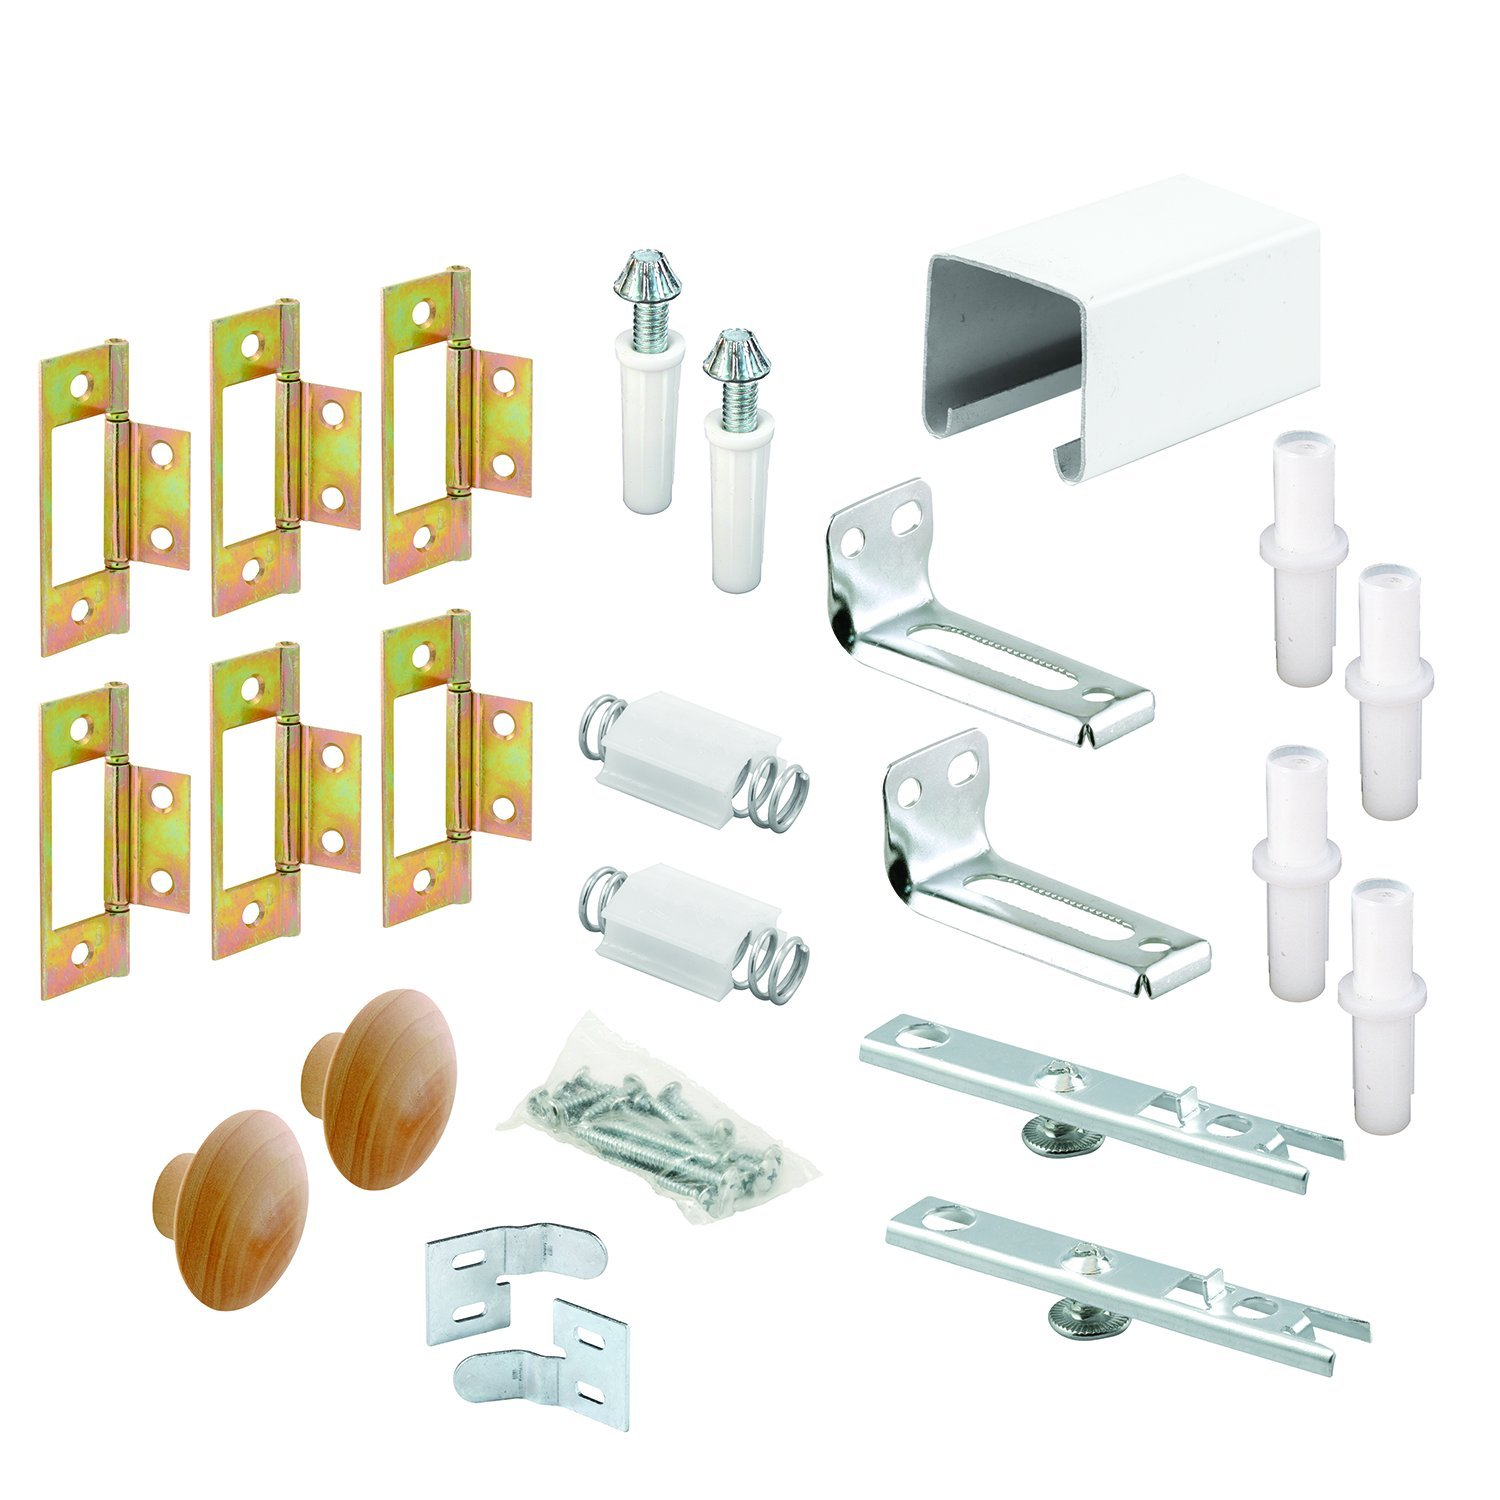 Prime-Line Products 164688 Bi-Fold Closet Track Kit, 60-Inch, 4 Door Hardware-Pack